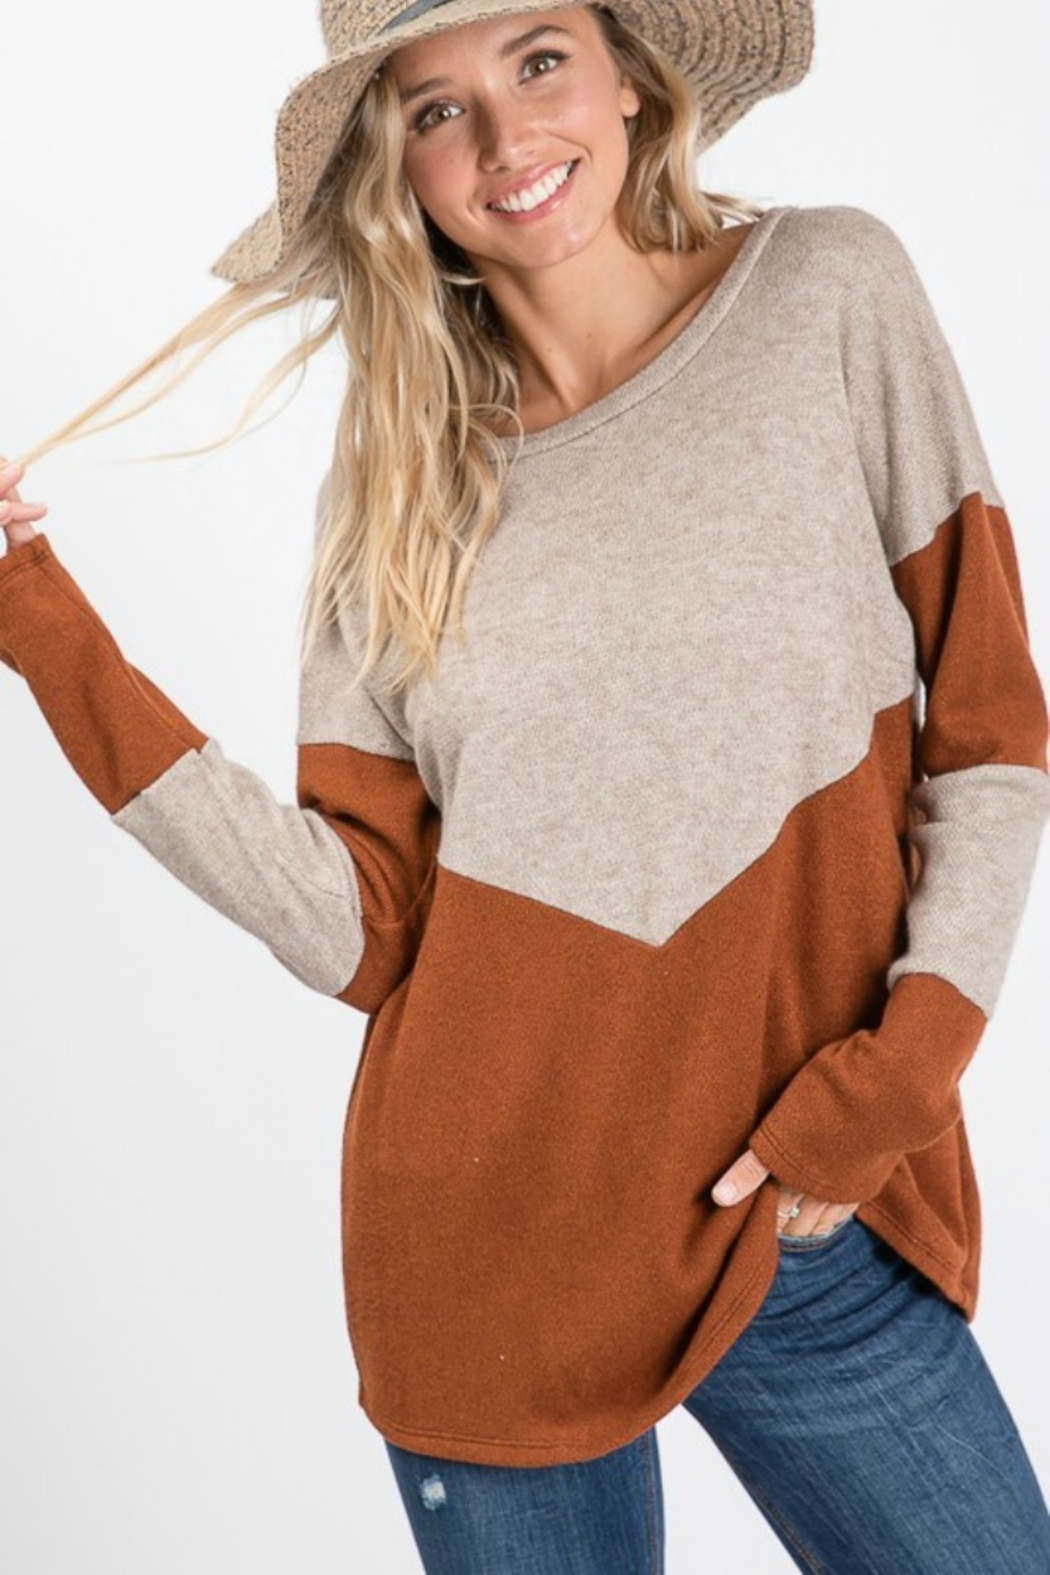 Cezanne 2TONE COLOR BLOCK SWEATER - Main Image